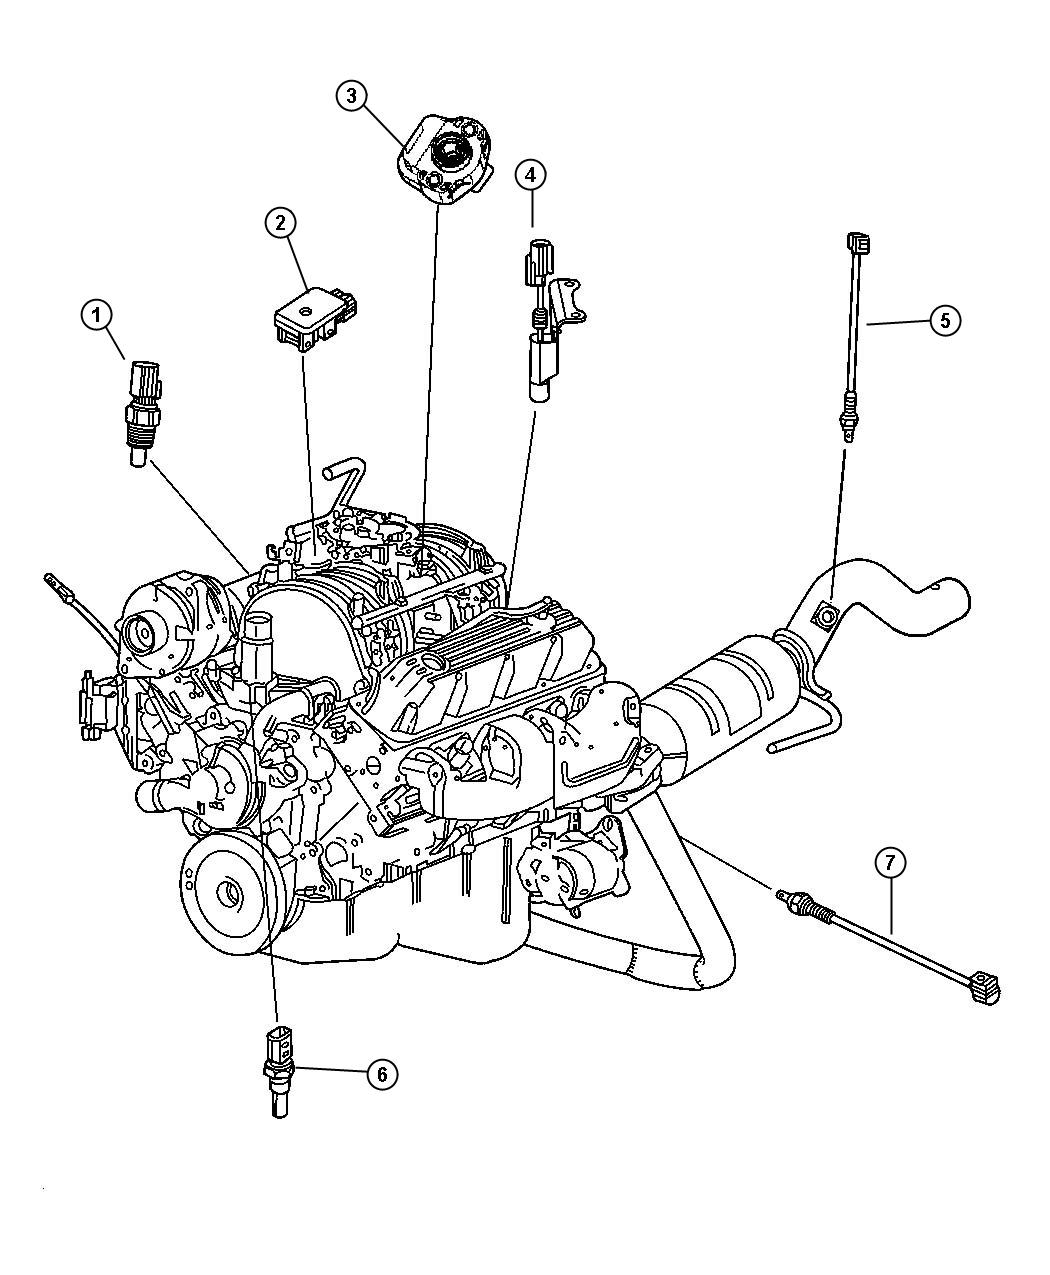 Amusing 97 dodge ram 1500 transmission wiring diagram photos best